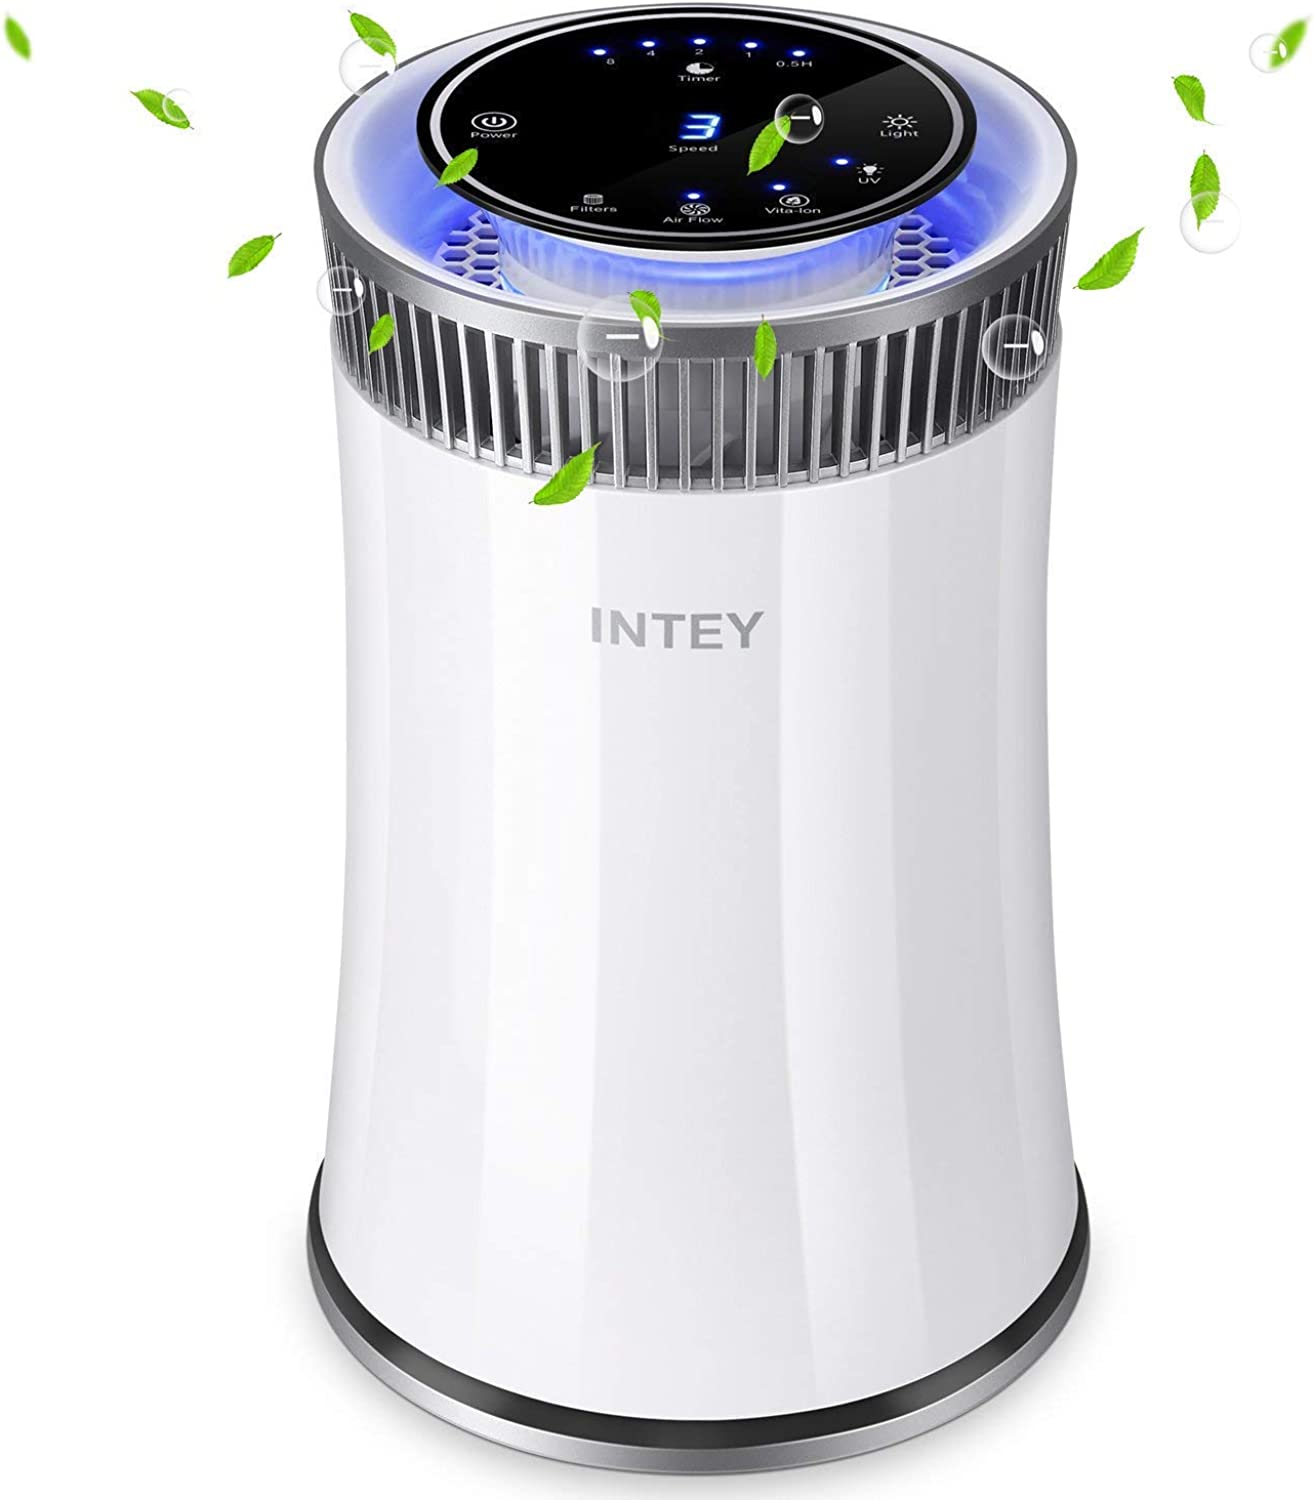 INTEY Hepa Air Purifier - Smart 8H Timer, Soothing bluee Night Light, Quite Air Purifiers for Home - Removes 99.97% Allergies, Smoke, Dust, Pollen, Pet Dander